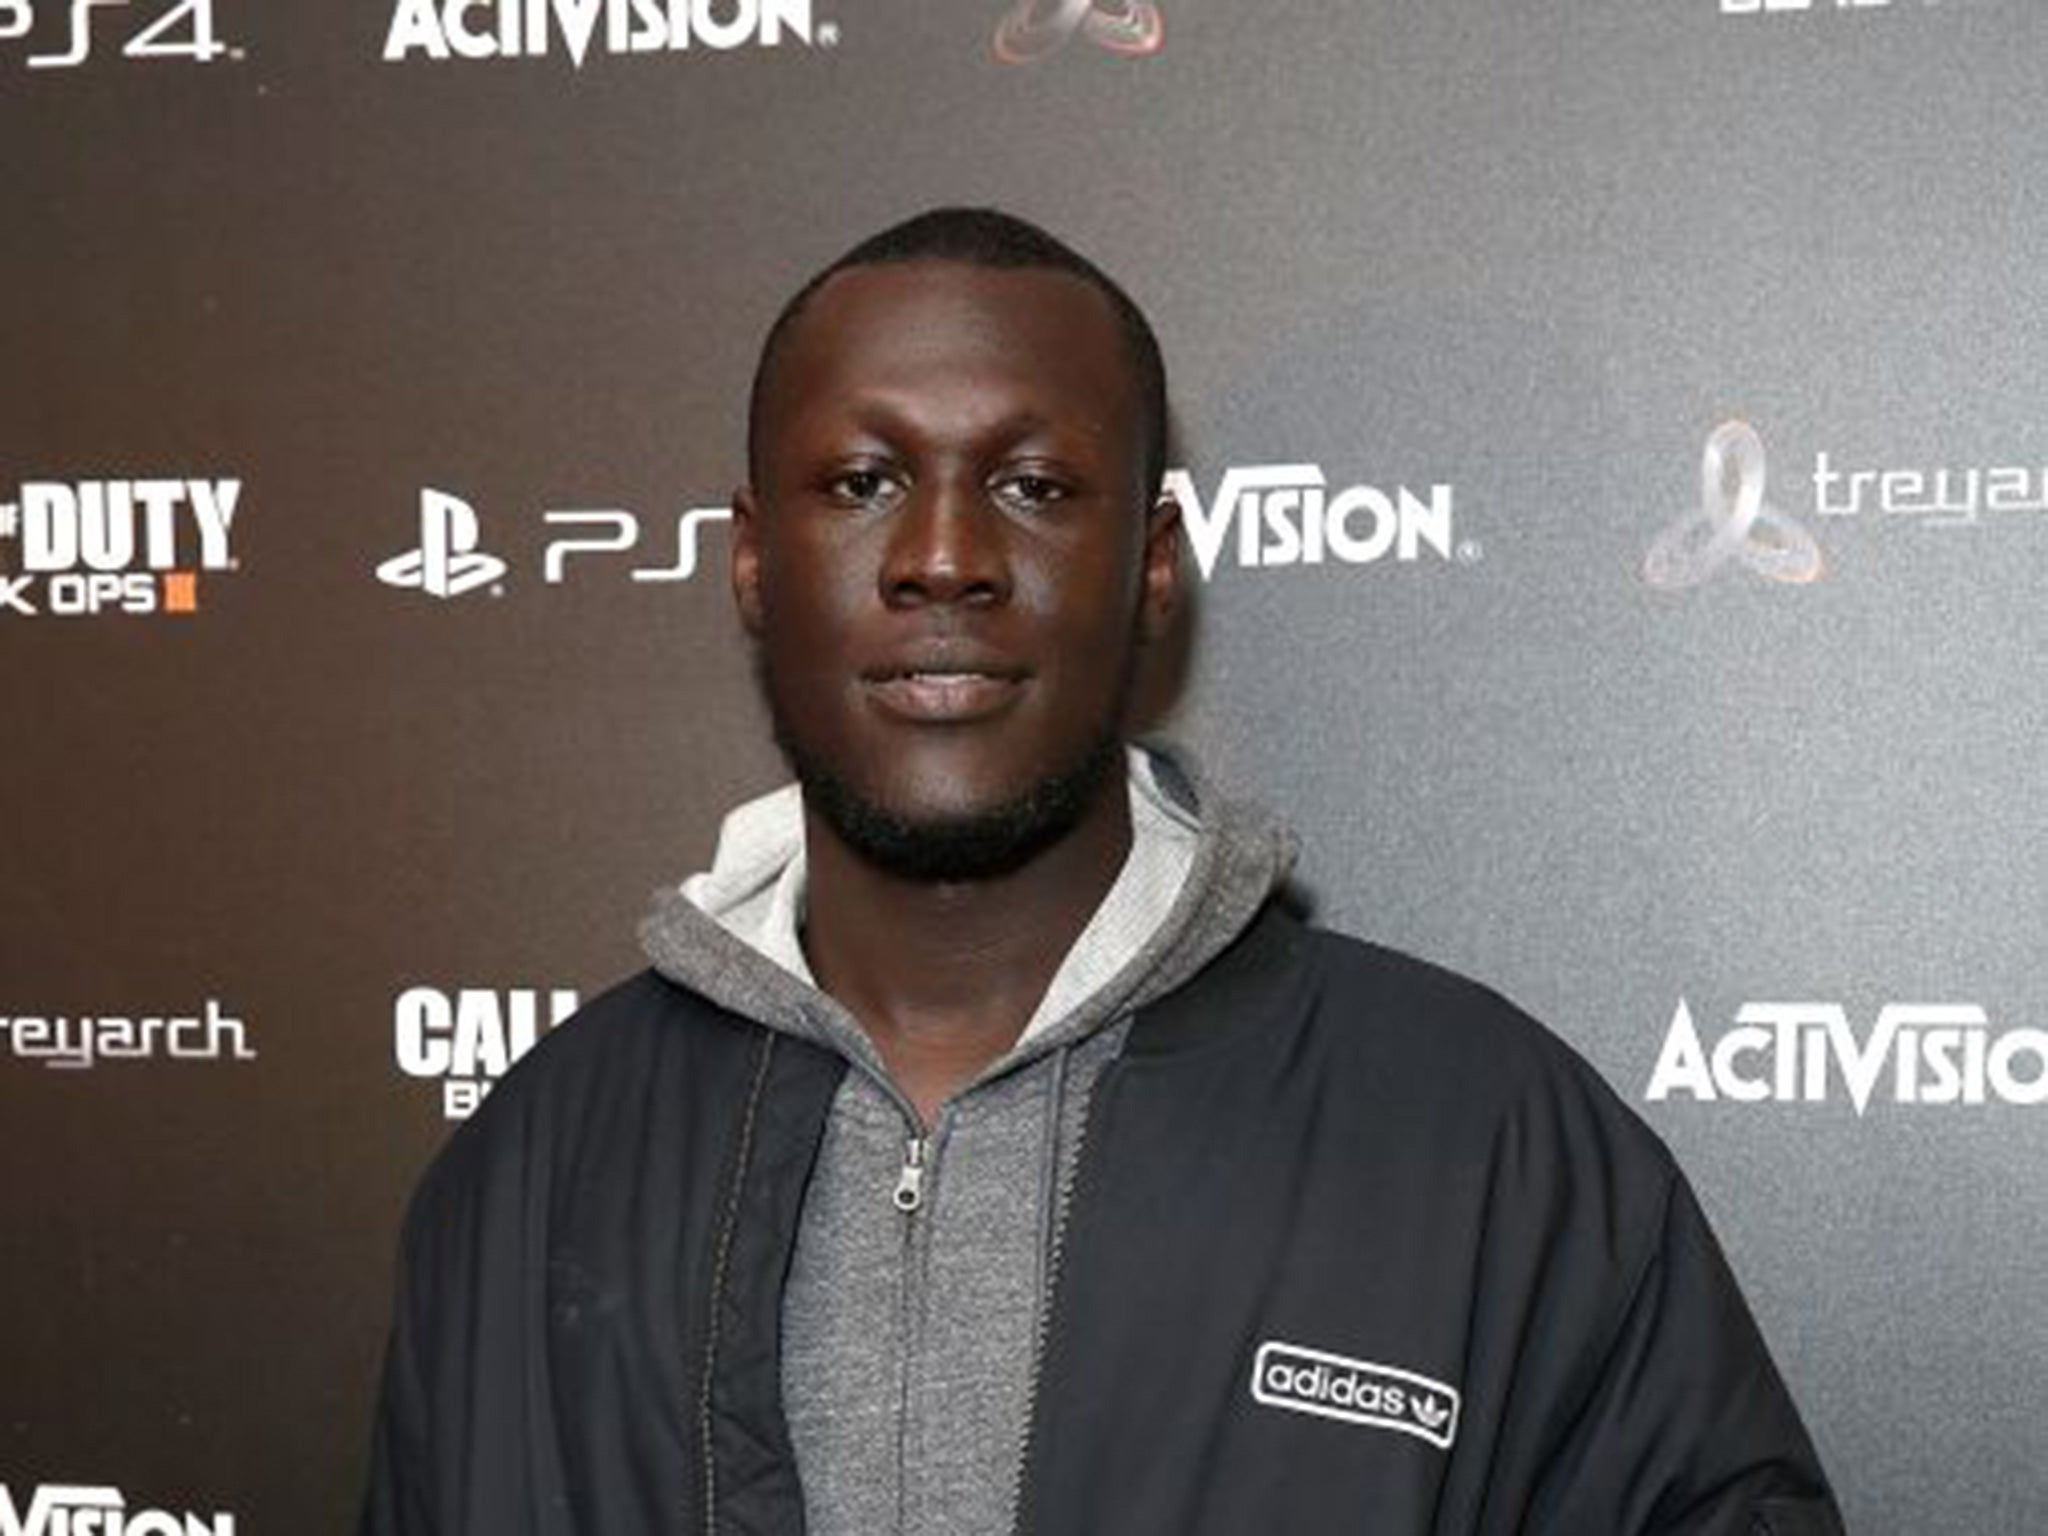 GSAP: Stormzy reveals tracklist for debut album plus a sneak preview of new song